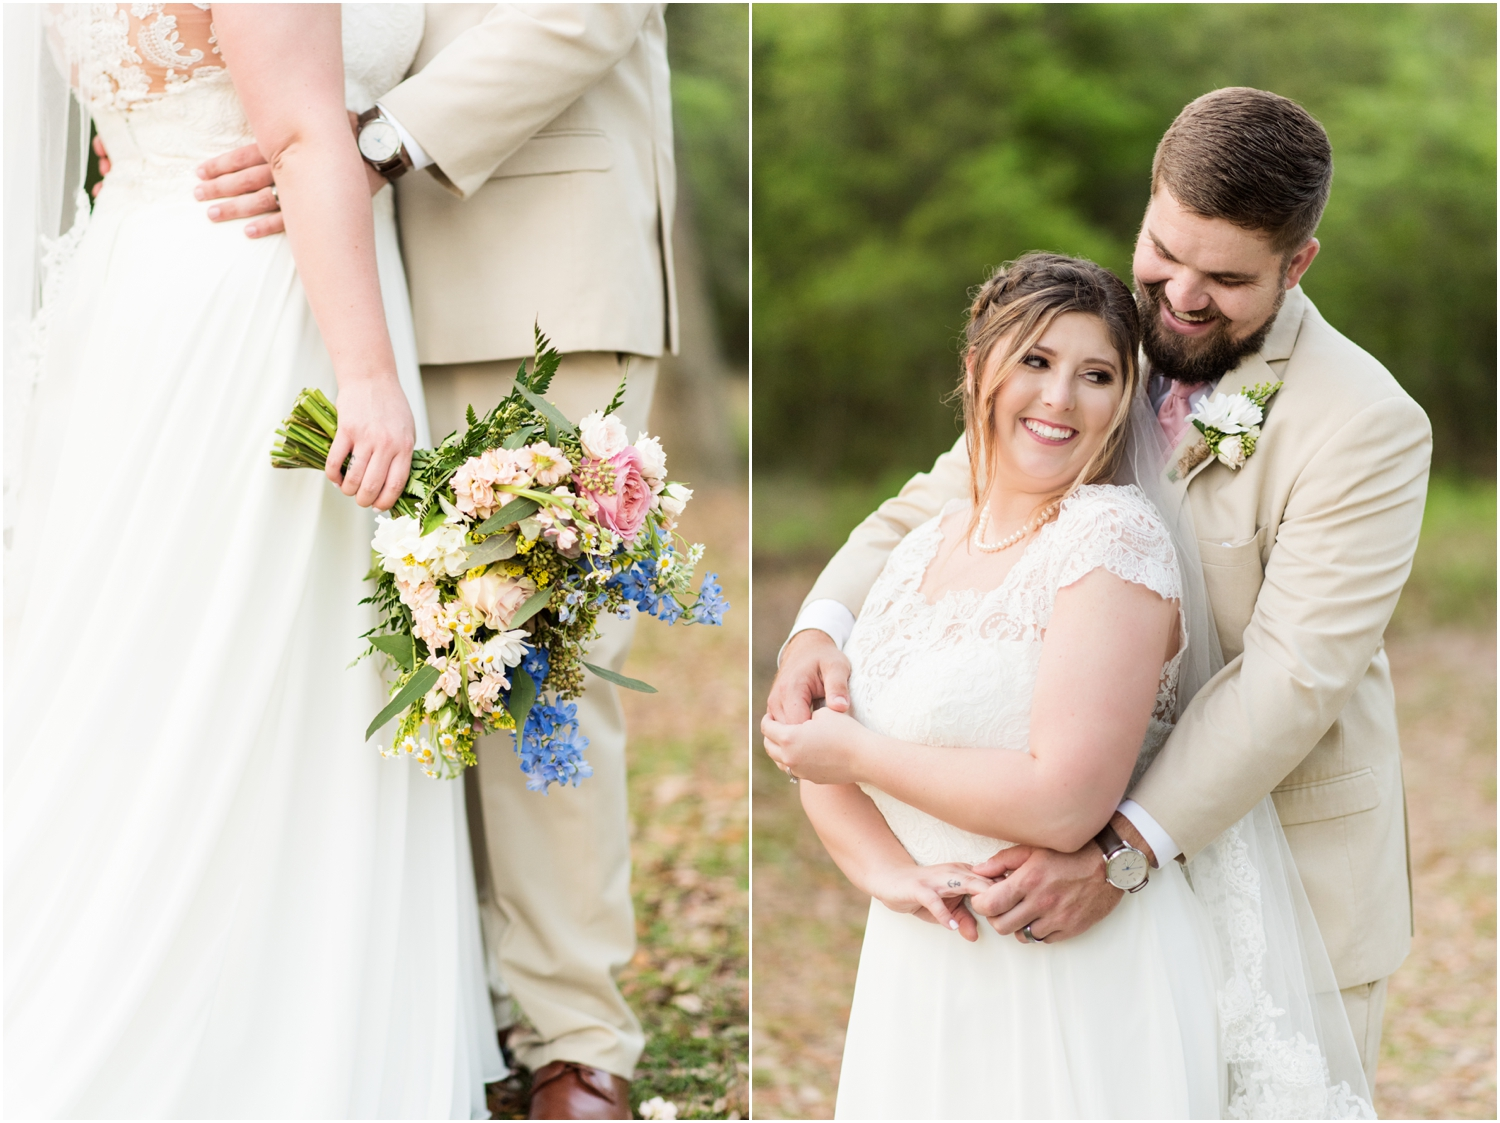 Sowell Farms Milton Florida Rustic Woodsy Barn Wedding Photographer bride groom portraits